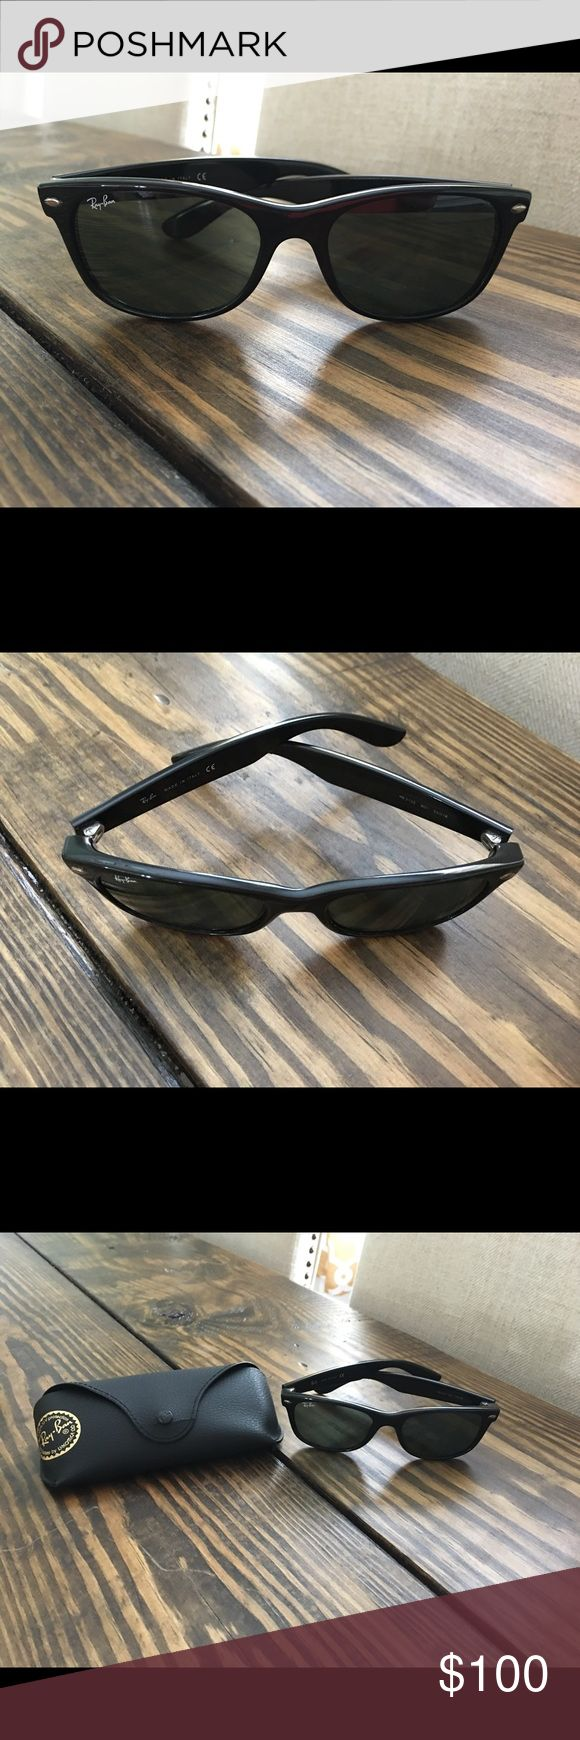 Ray Ban Wayfarer Classic Black Sunglasses Barley worn, no scratches, kept in case. Excellent condition. Ray-Ban Other